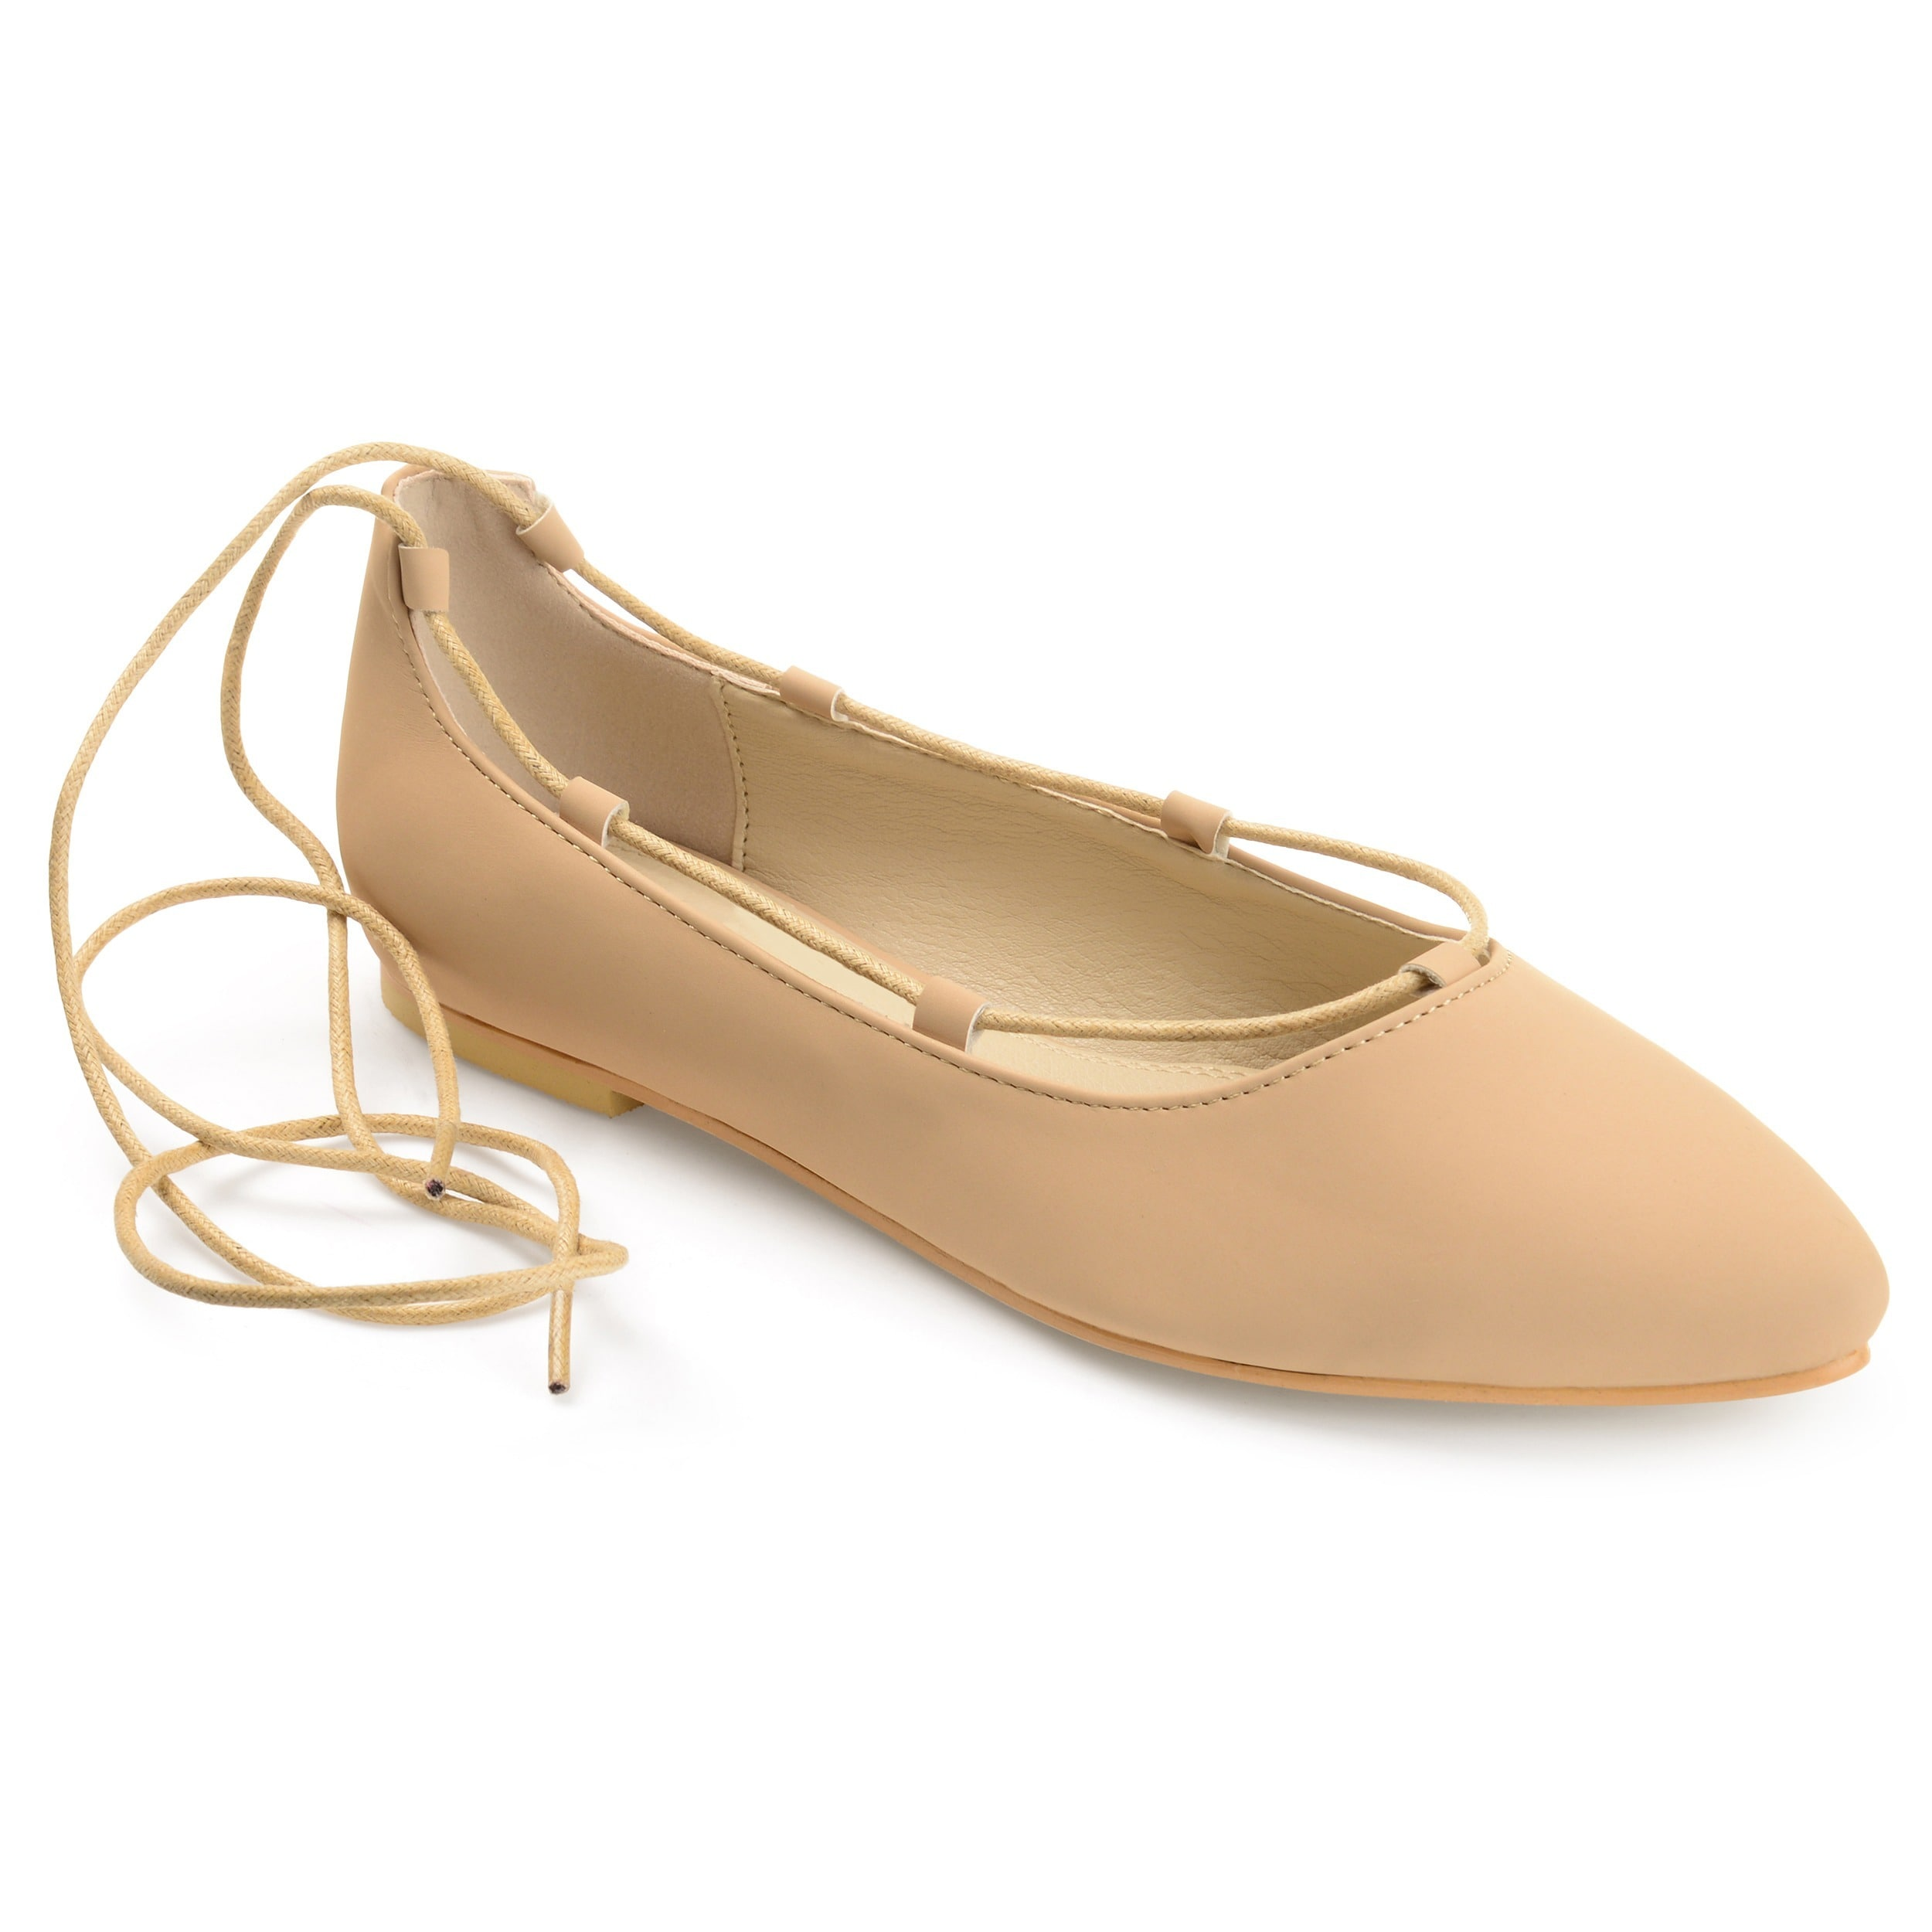 Journee Collection Women's 'Fiona' Lace-up Pointed Toe Ballet Flats (More  options